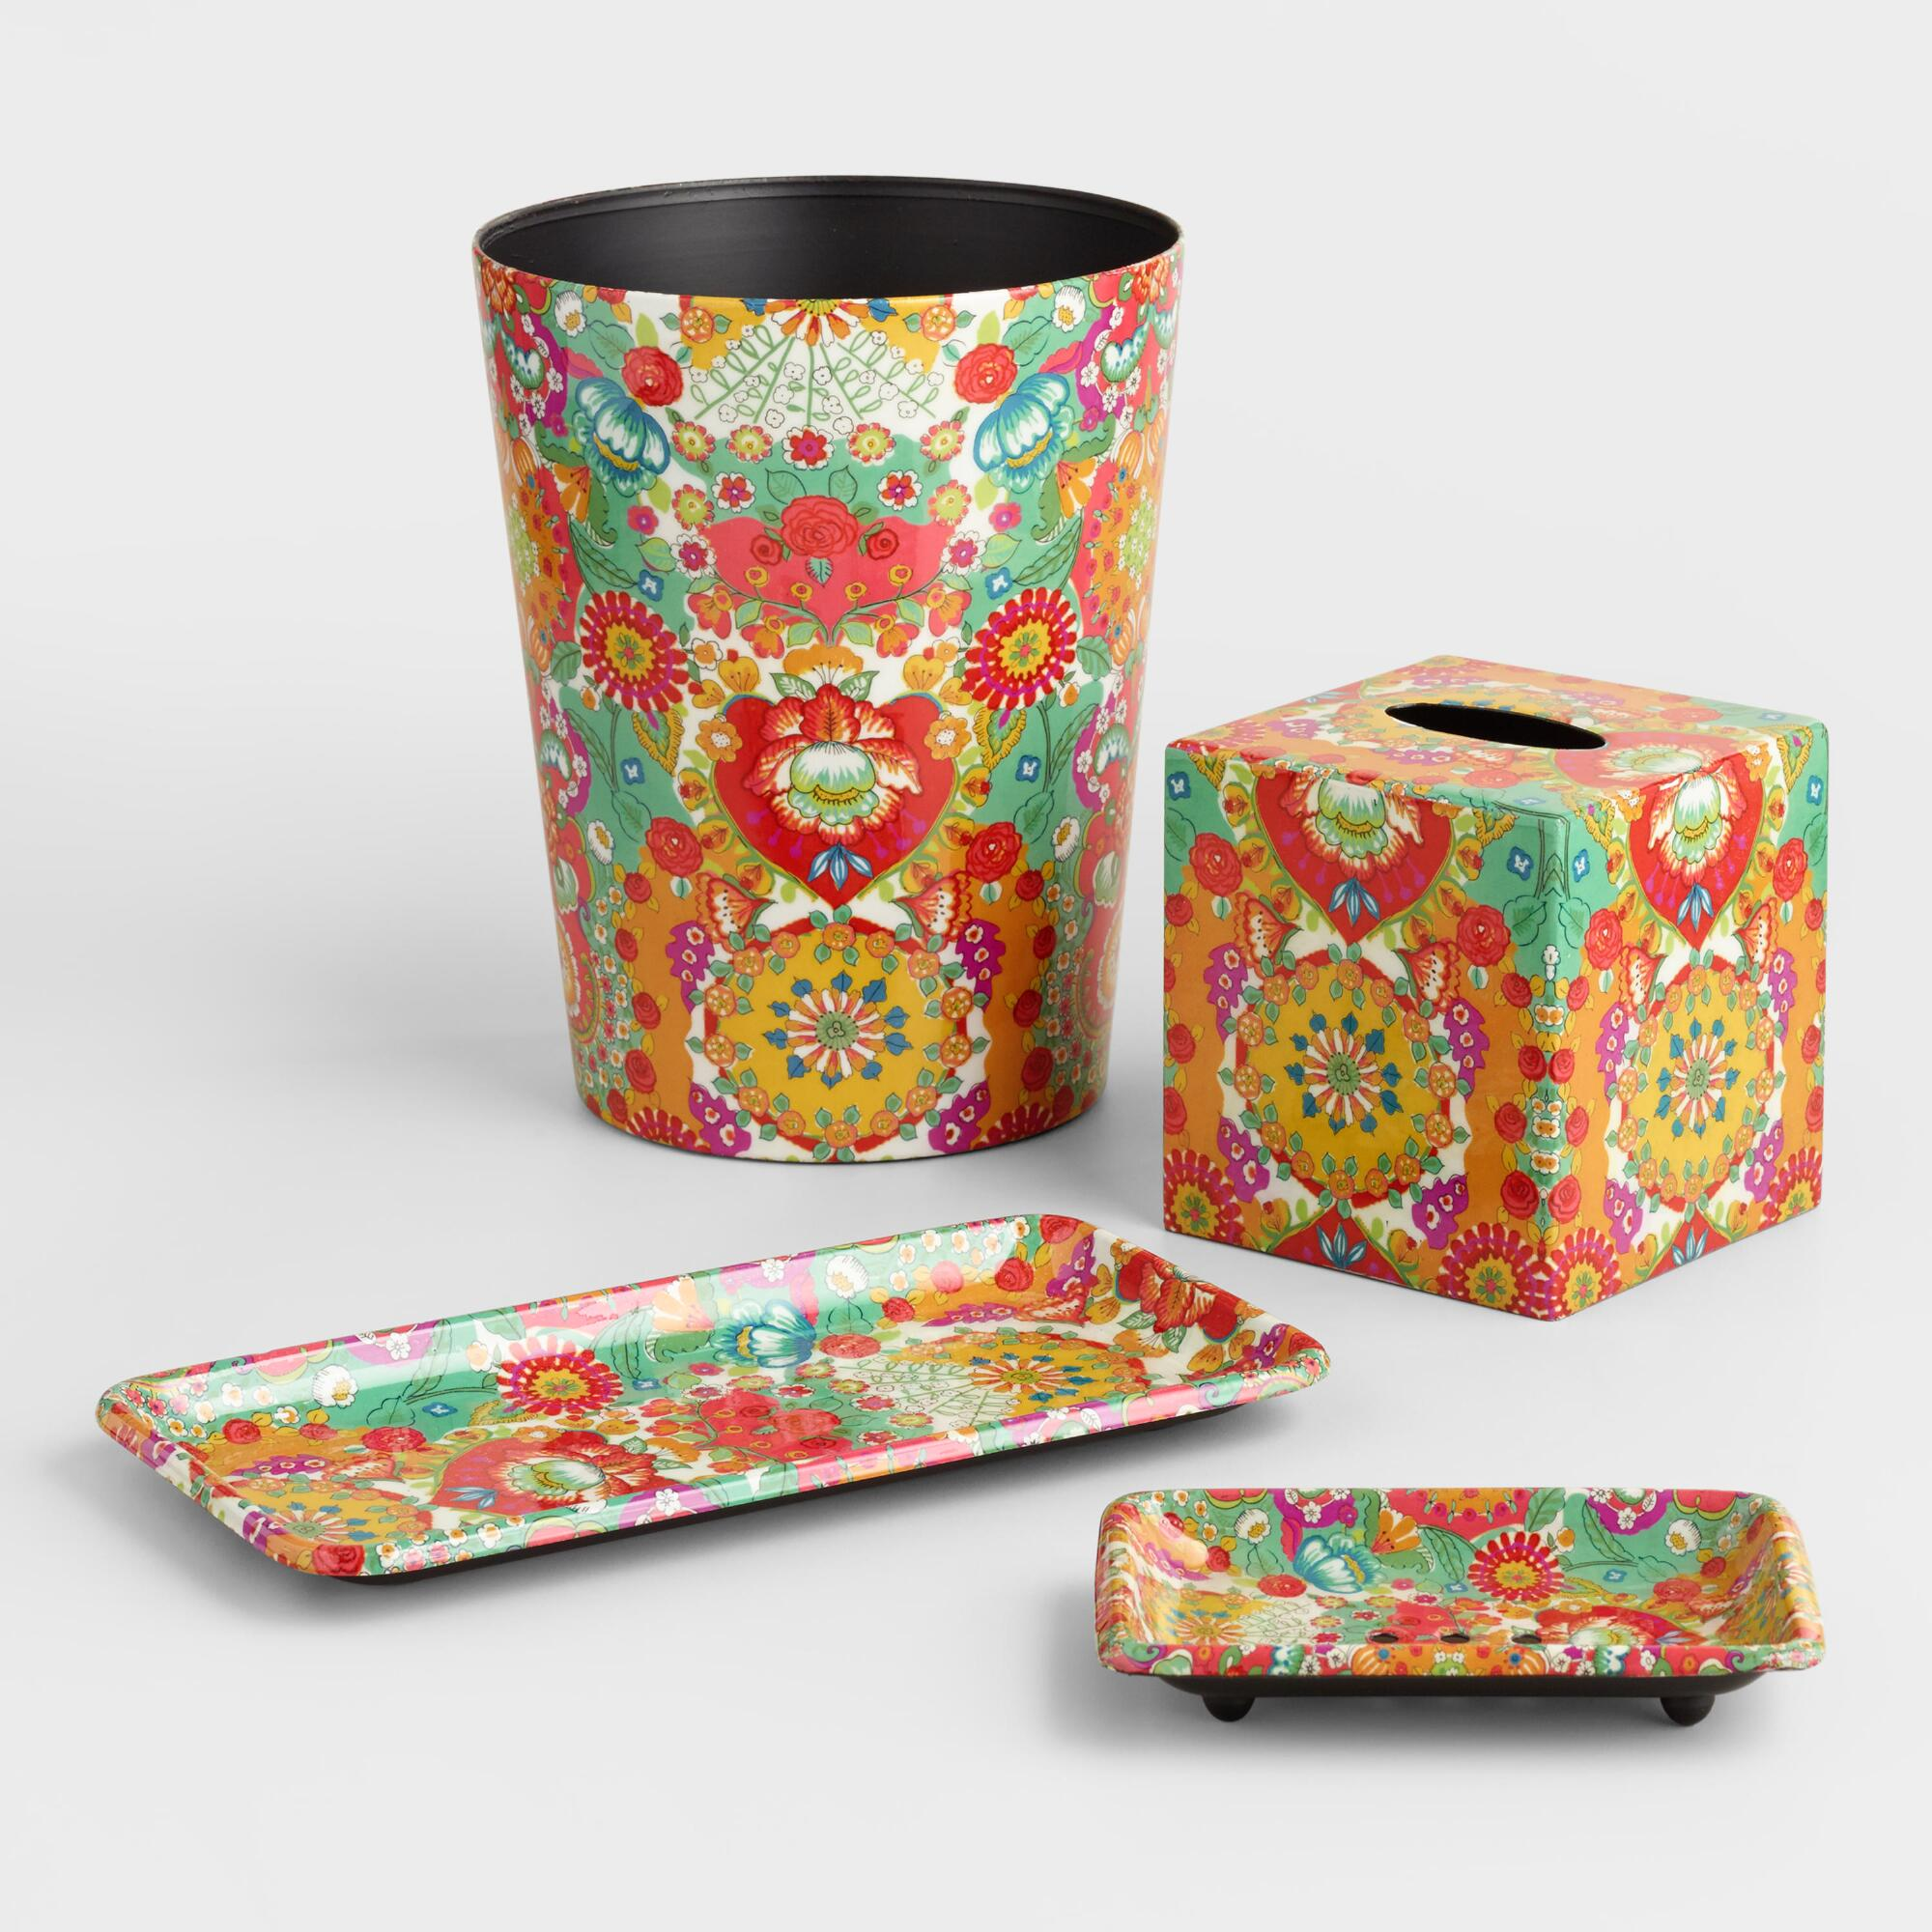 Bettina floral bath accessories collection world market for Floral bathroom accessories set